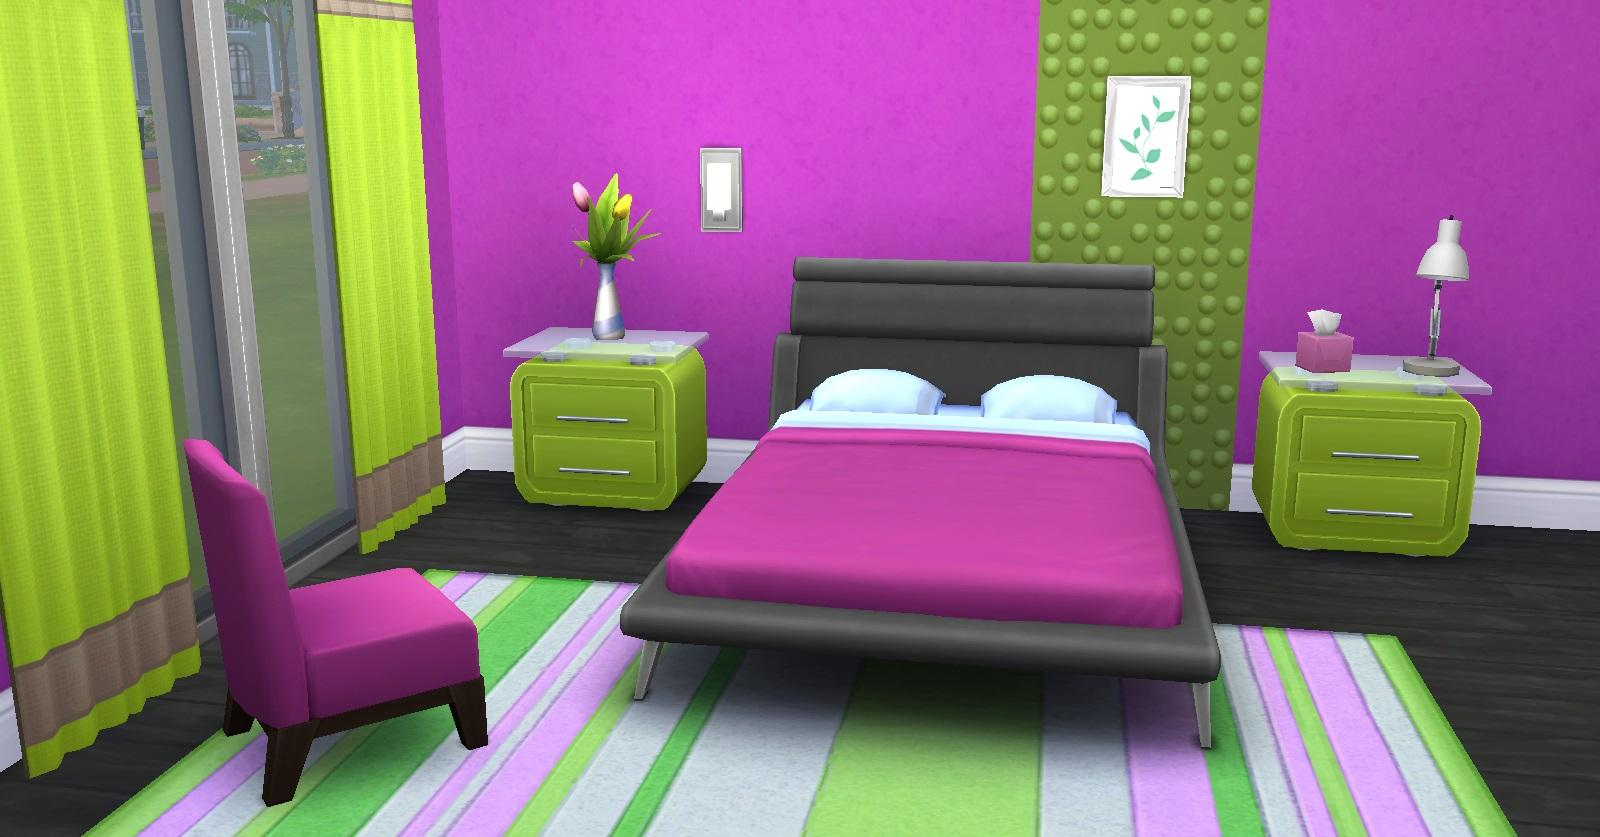 ordinaire couleur prune et vert anis 8 et si on mariait. Black Bedroom Furniture Sets. Home Design Ideas